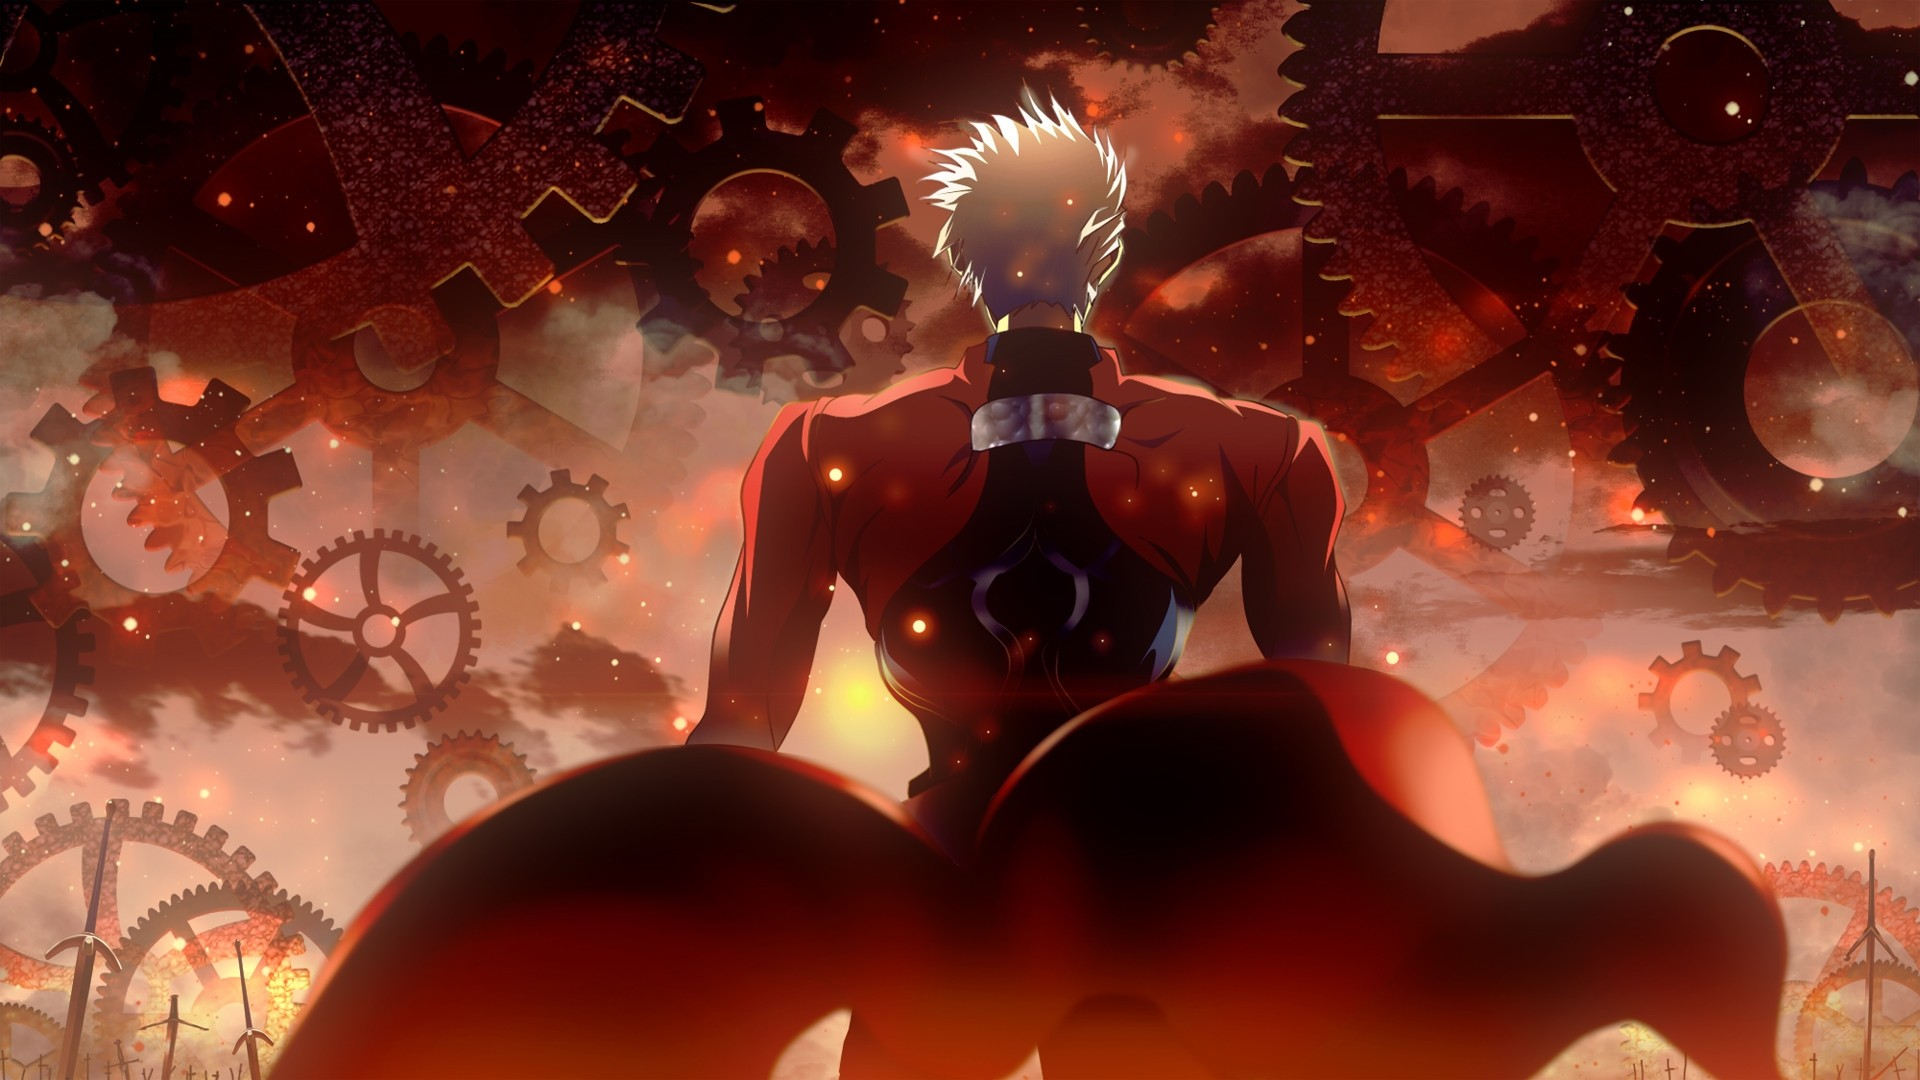 Fate Stay Night Archer Wallpaper Phone Anime Wallpaper Fate Stay Night  Wallpaper 2017